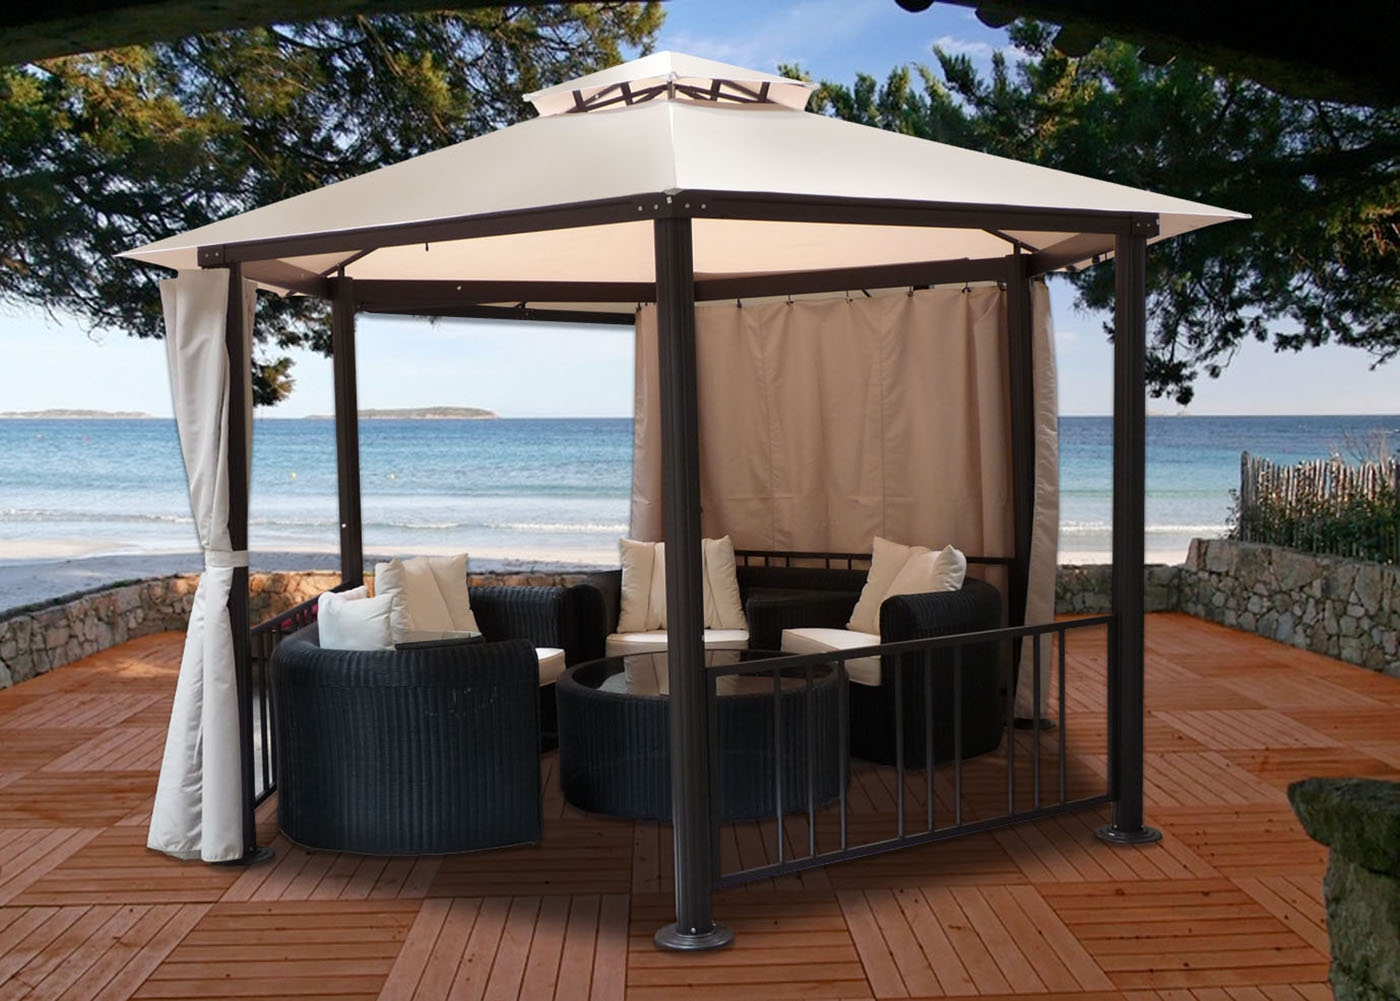 tonnelle hexagonale kiosque de jardin diam tre 3 5 m aluminium. Black Bedroom Furniture Sets. Home Design Ideas